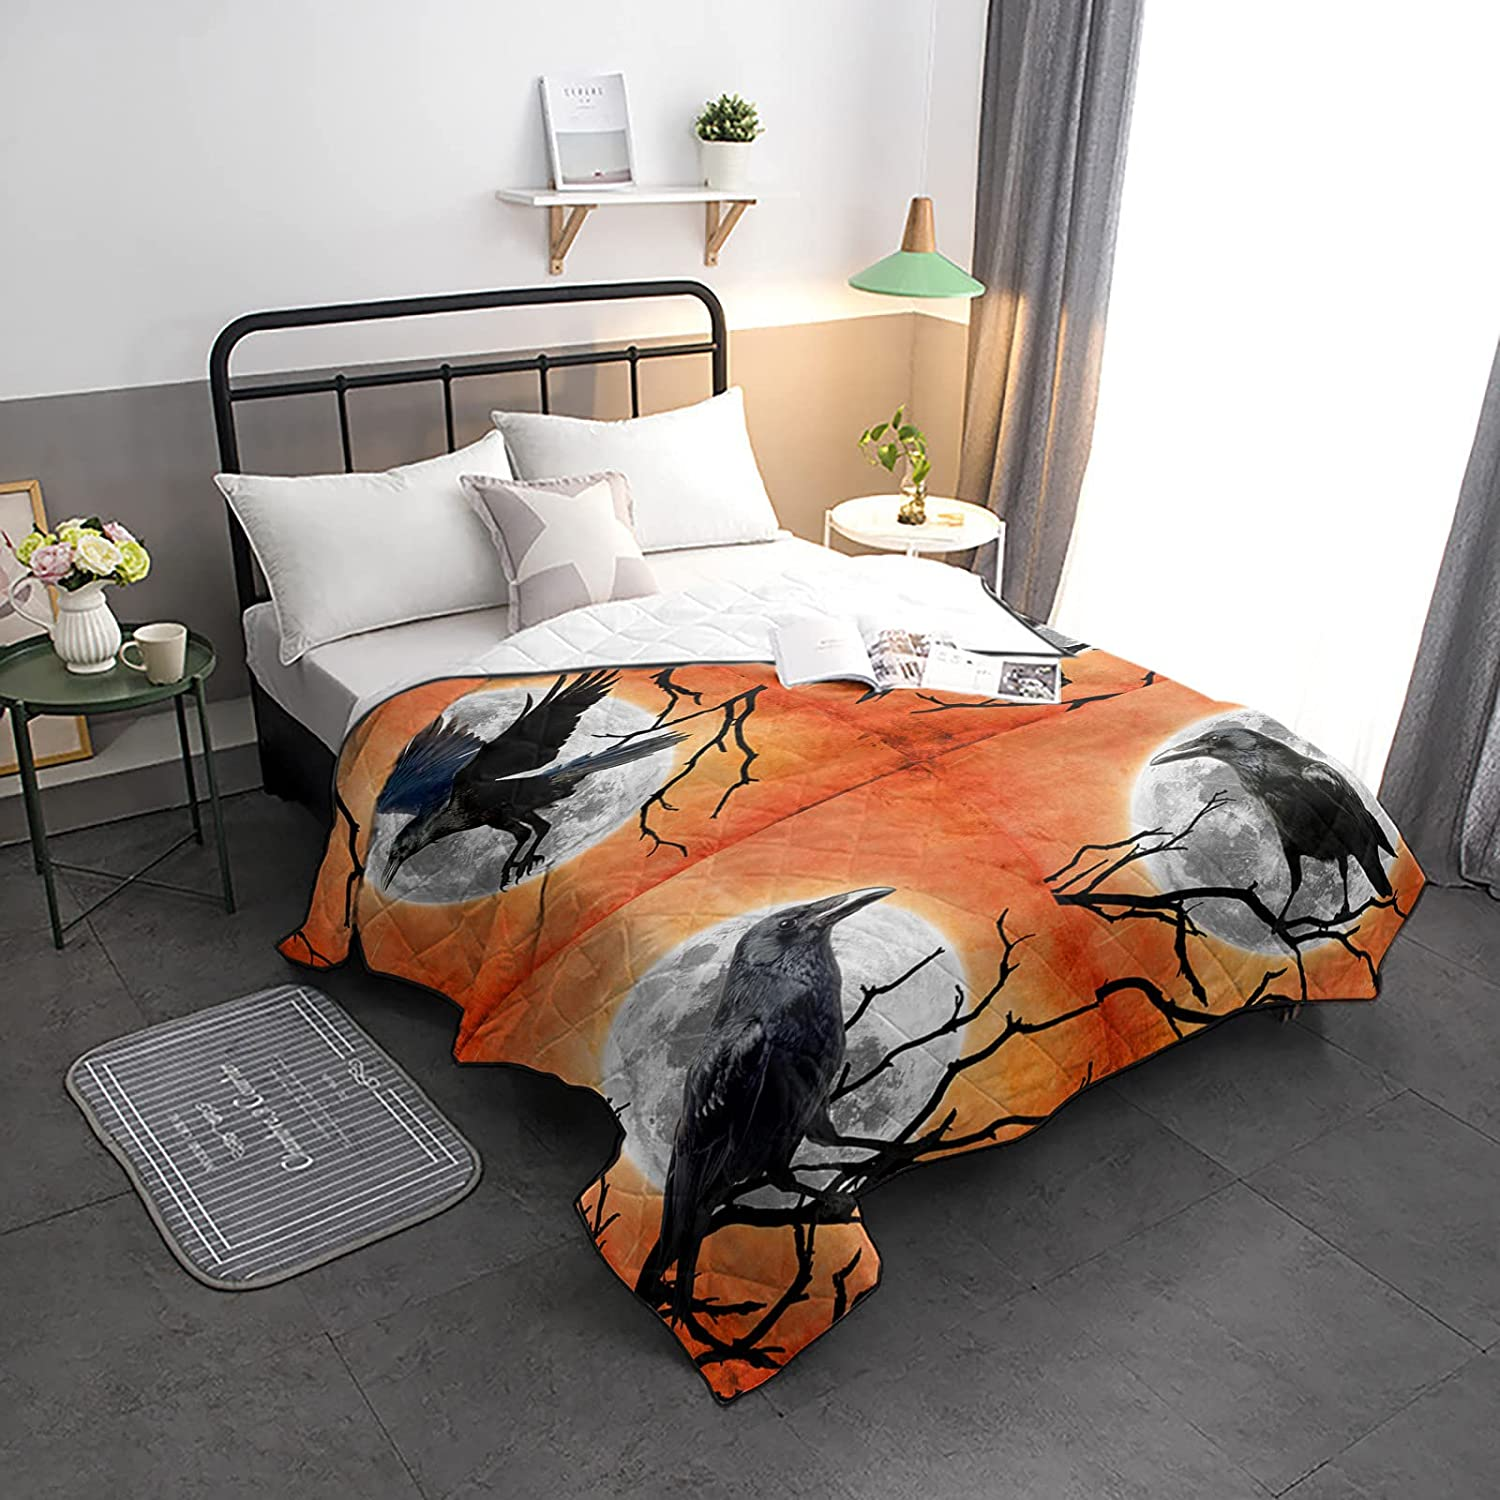 Down Alternative Comforter Halloween Phoenix Mall Max 89% OFF Black Branches Re with Crow